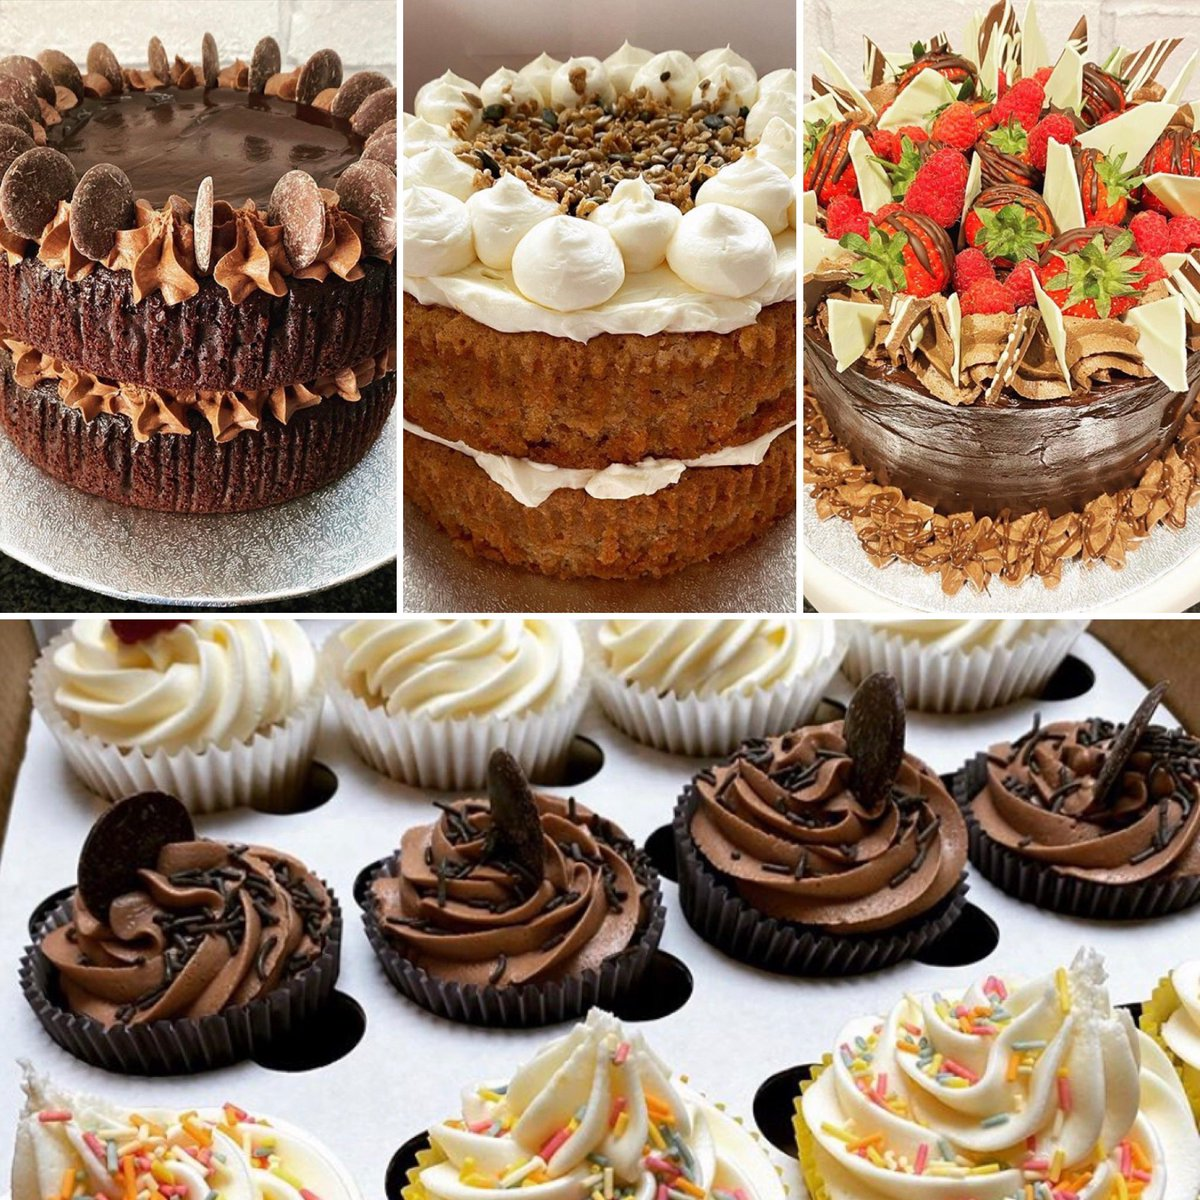 """STUNNING cakes are made by the very lovely Joy at #BakeMeHappy, a brilliant cookery teacher, a wonderful baker and throughout #lockdown her """"Happy Friday Bakes"""" have been sold in support of us. Thank you so much Joy for your support! #followafriend #followfriday #TunbridgeWells https://t.co/gIq3QXMOmo"""